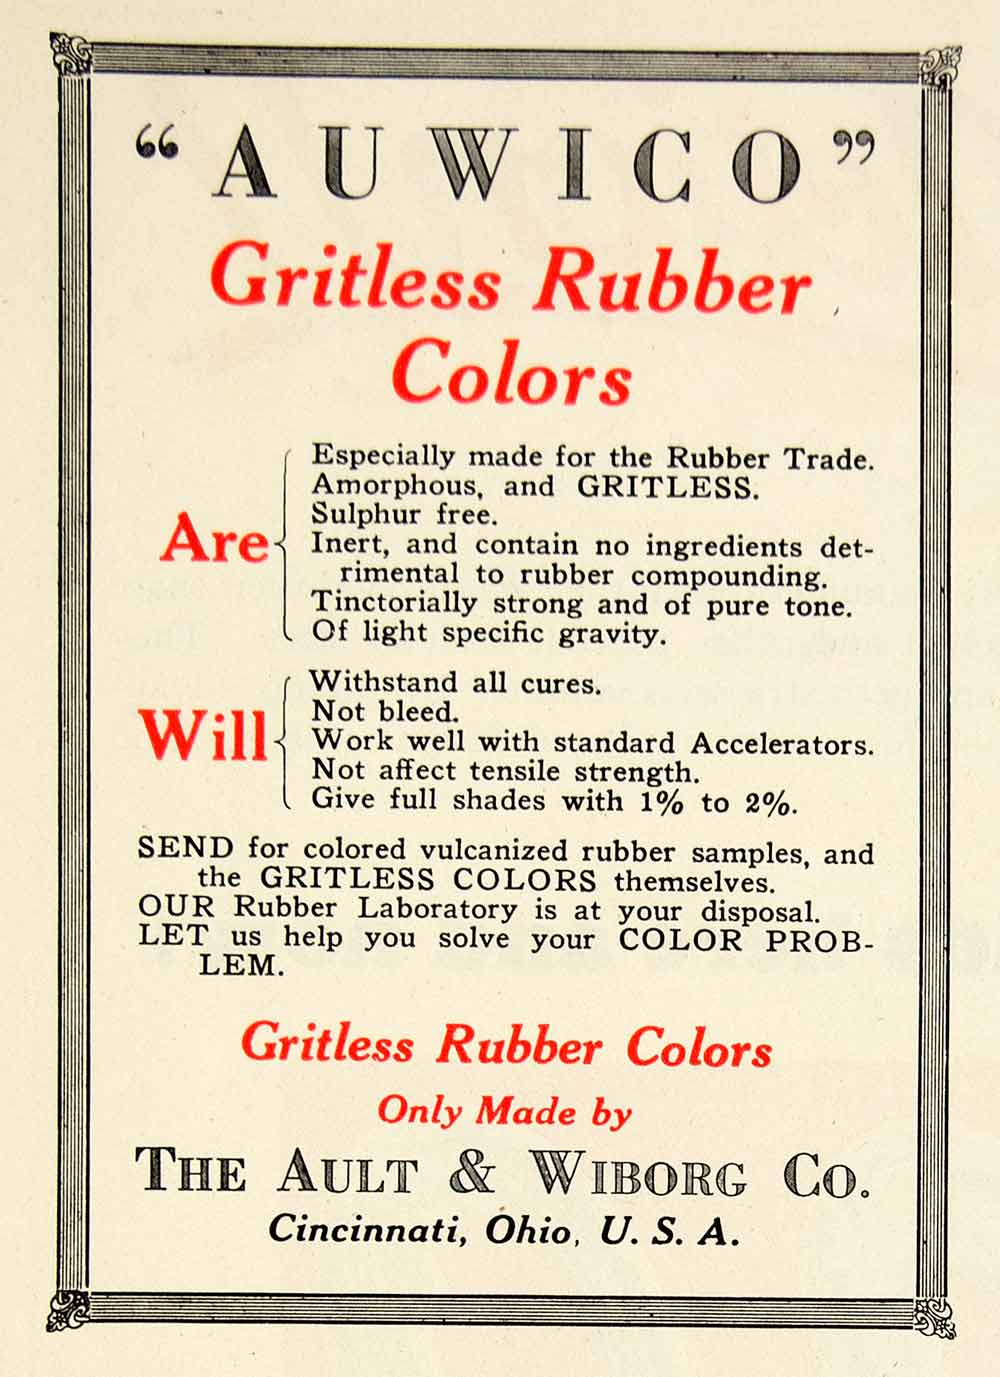 1925 Advert Auwico Gritless Rubber Colors Ault Wiborg Cincinnati Ohio IRR1